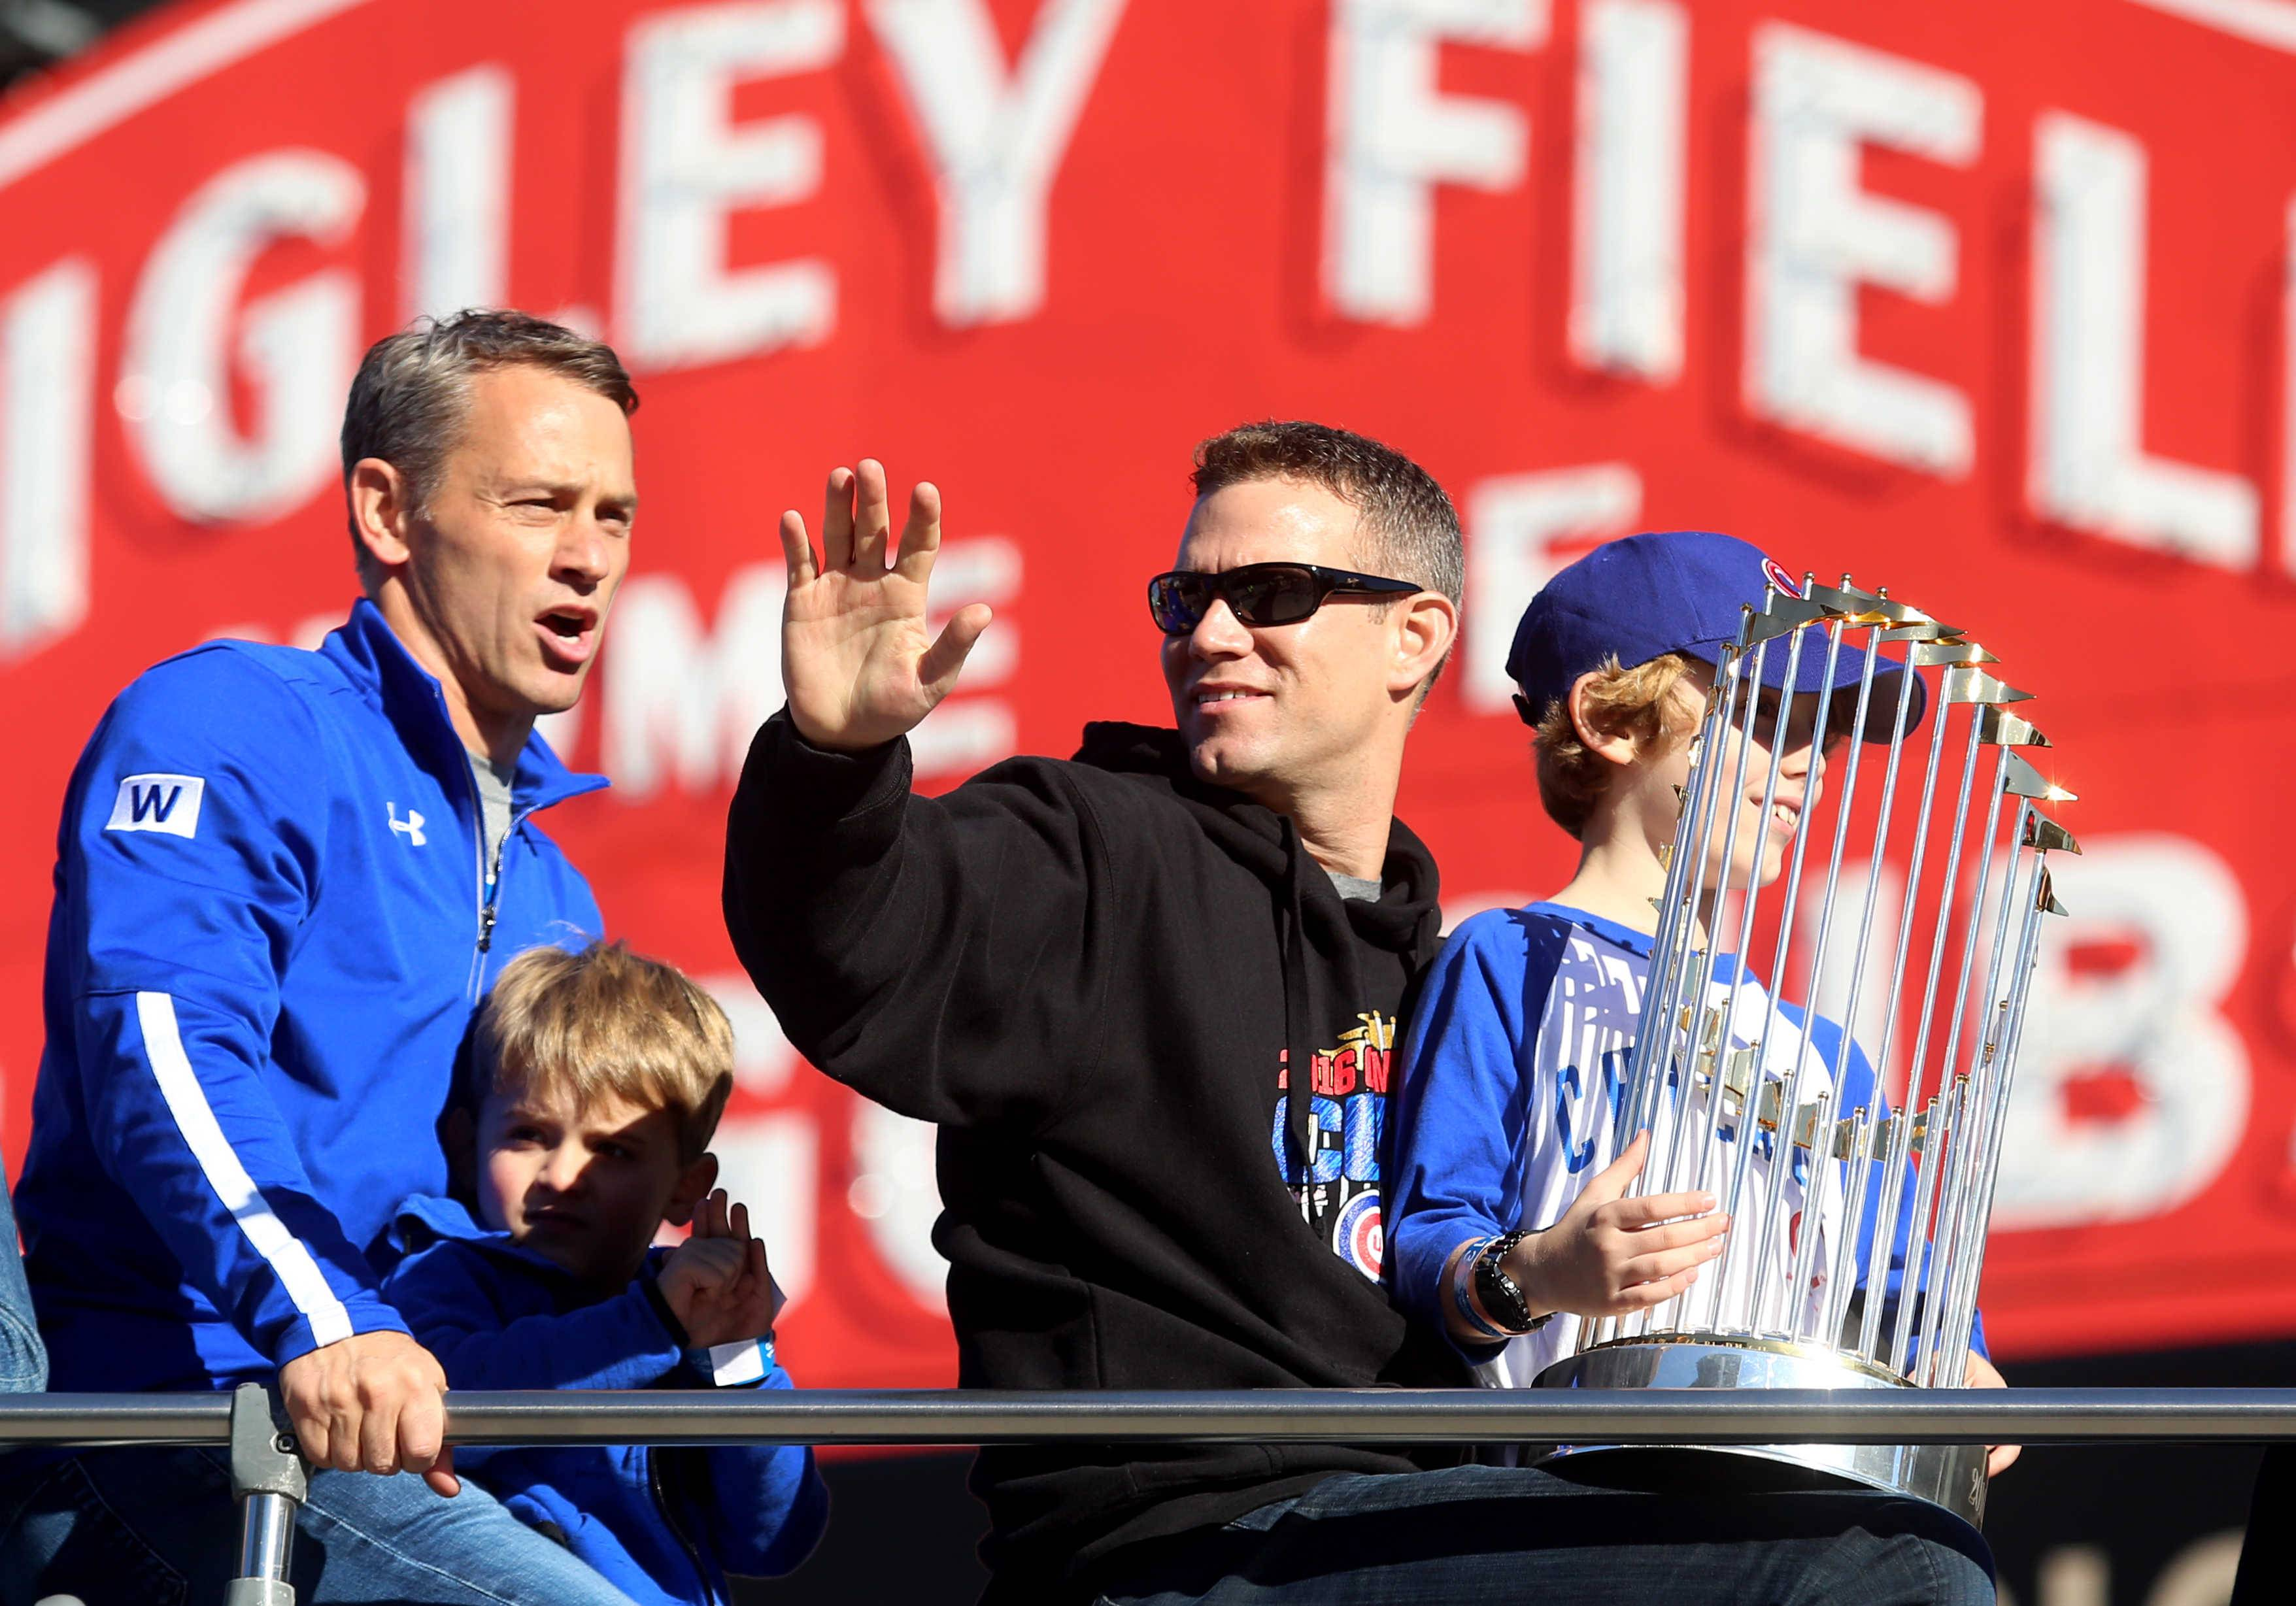 Images: Fans swarm Wrigley for Cubs parade